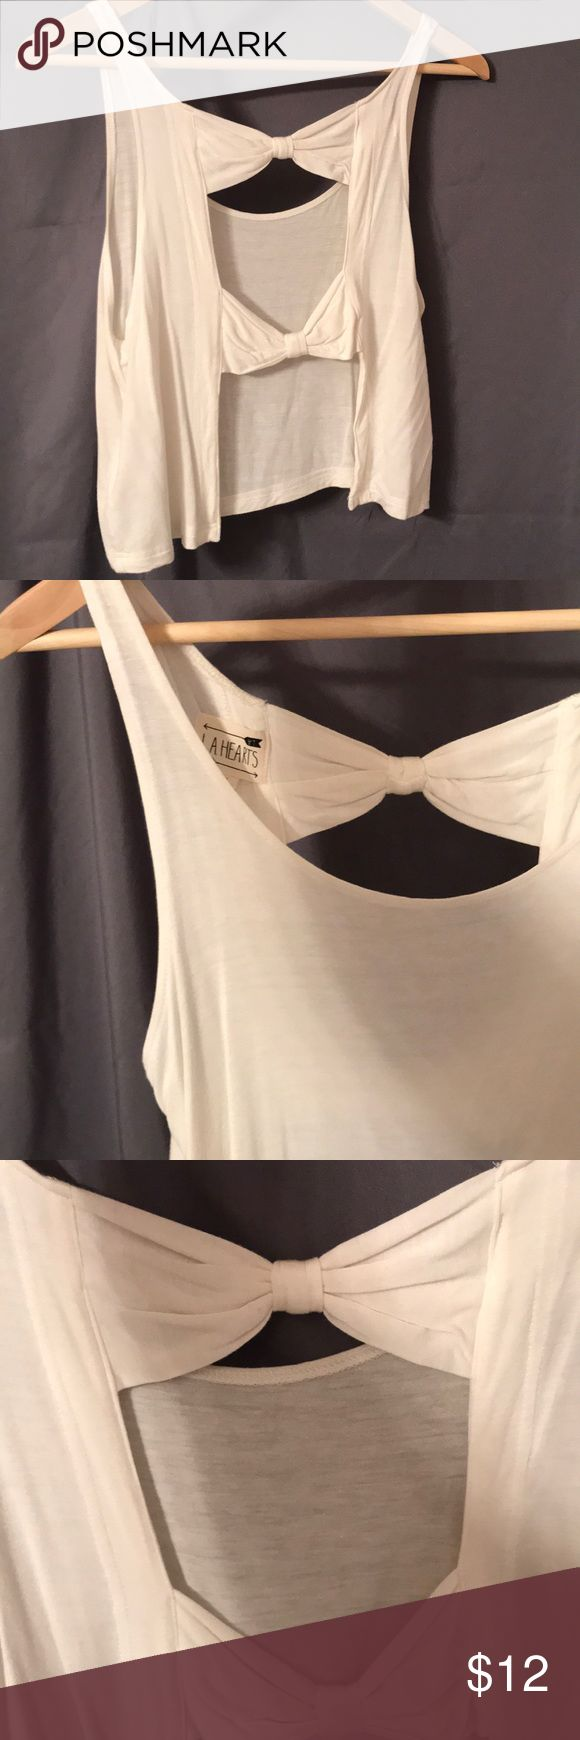 Bow crop top Can't get over how adorable this crop top is. Open back with two bows shown. Lightweight for hot summer days! Perfect match for high waisted shorts or maxi skirts! La Hearts Tops Crop Tops